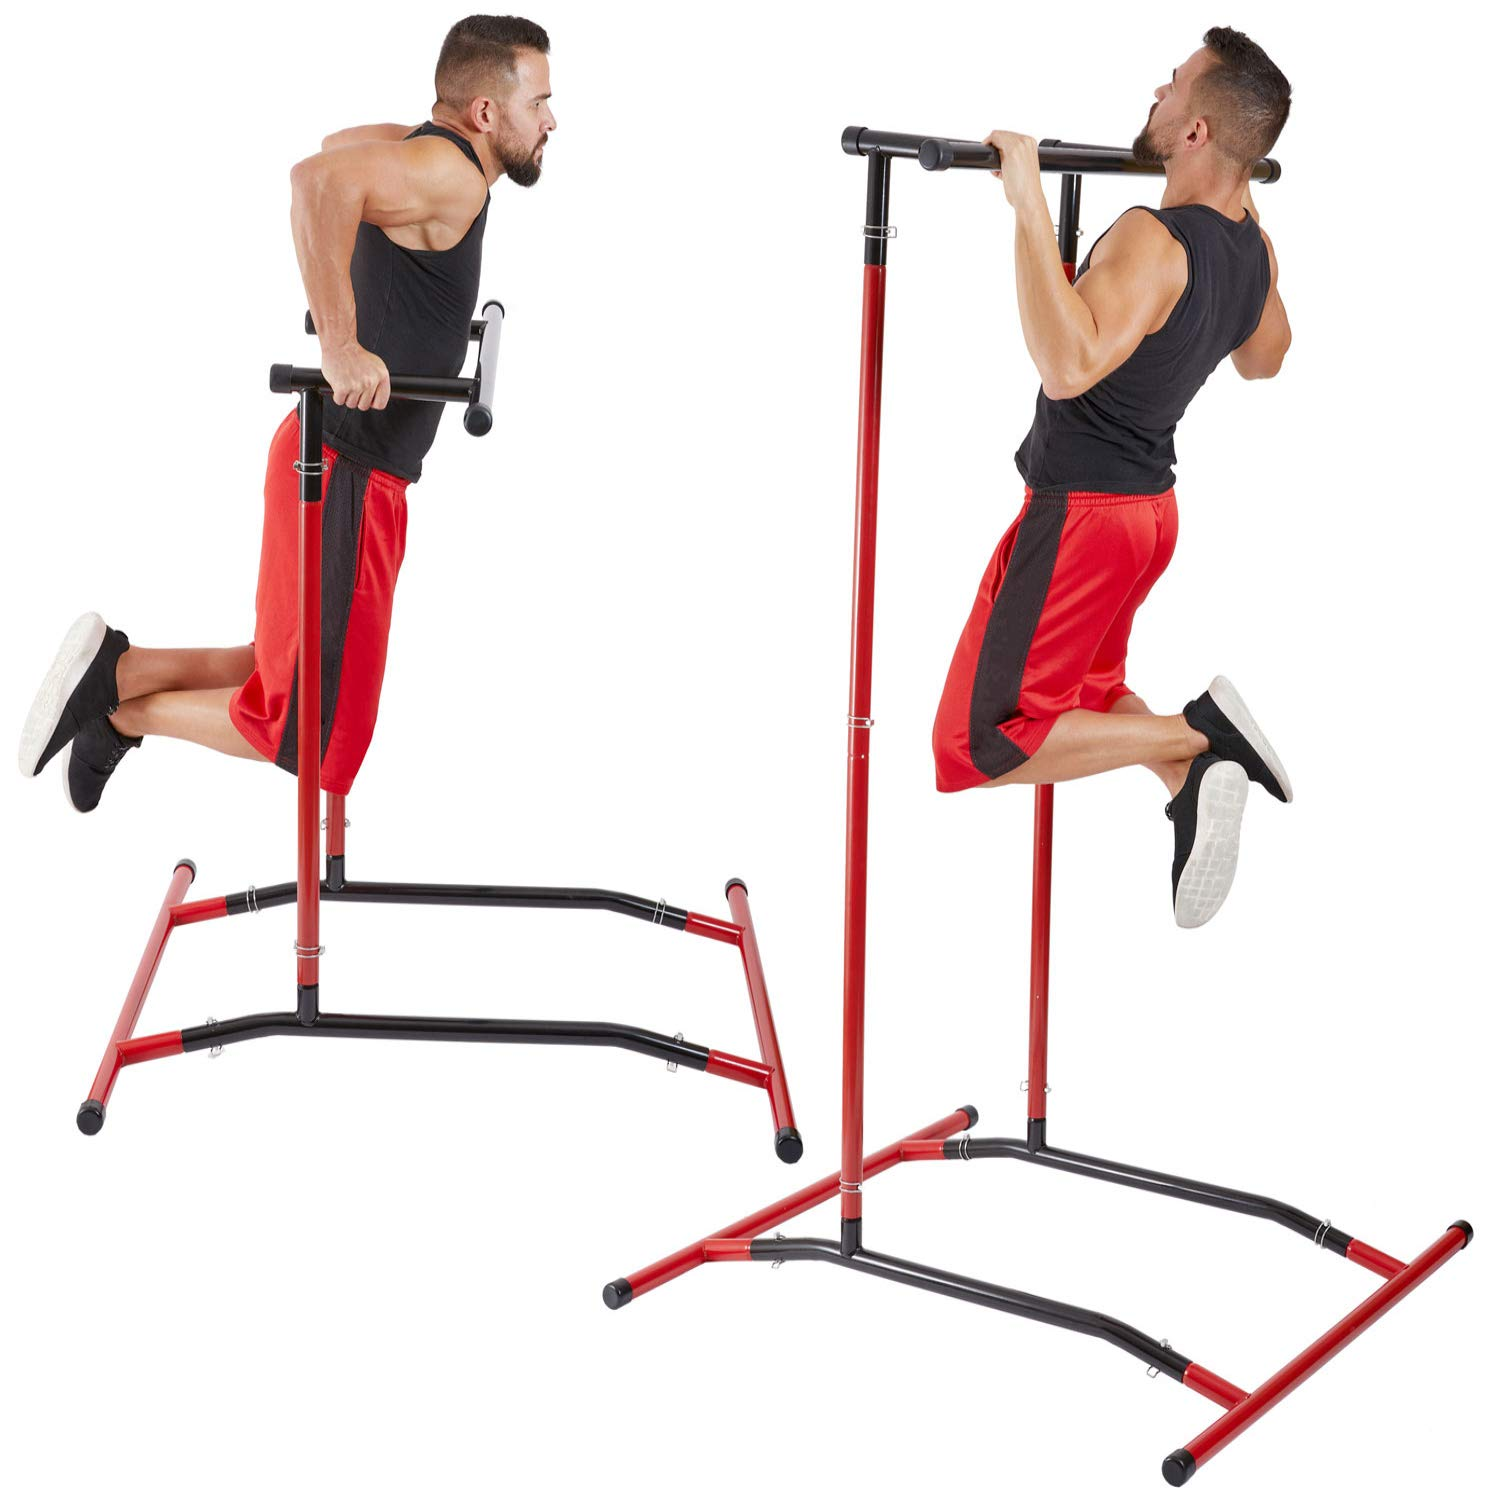 GoBeast Pull Up Bar Free Standing Dip Station – Portable Power Tower Home Gym Equipment With 3 Resistance Bands, Storage Bag And Downloadable Exercise Manual,Red Black